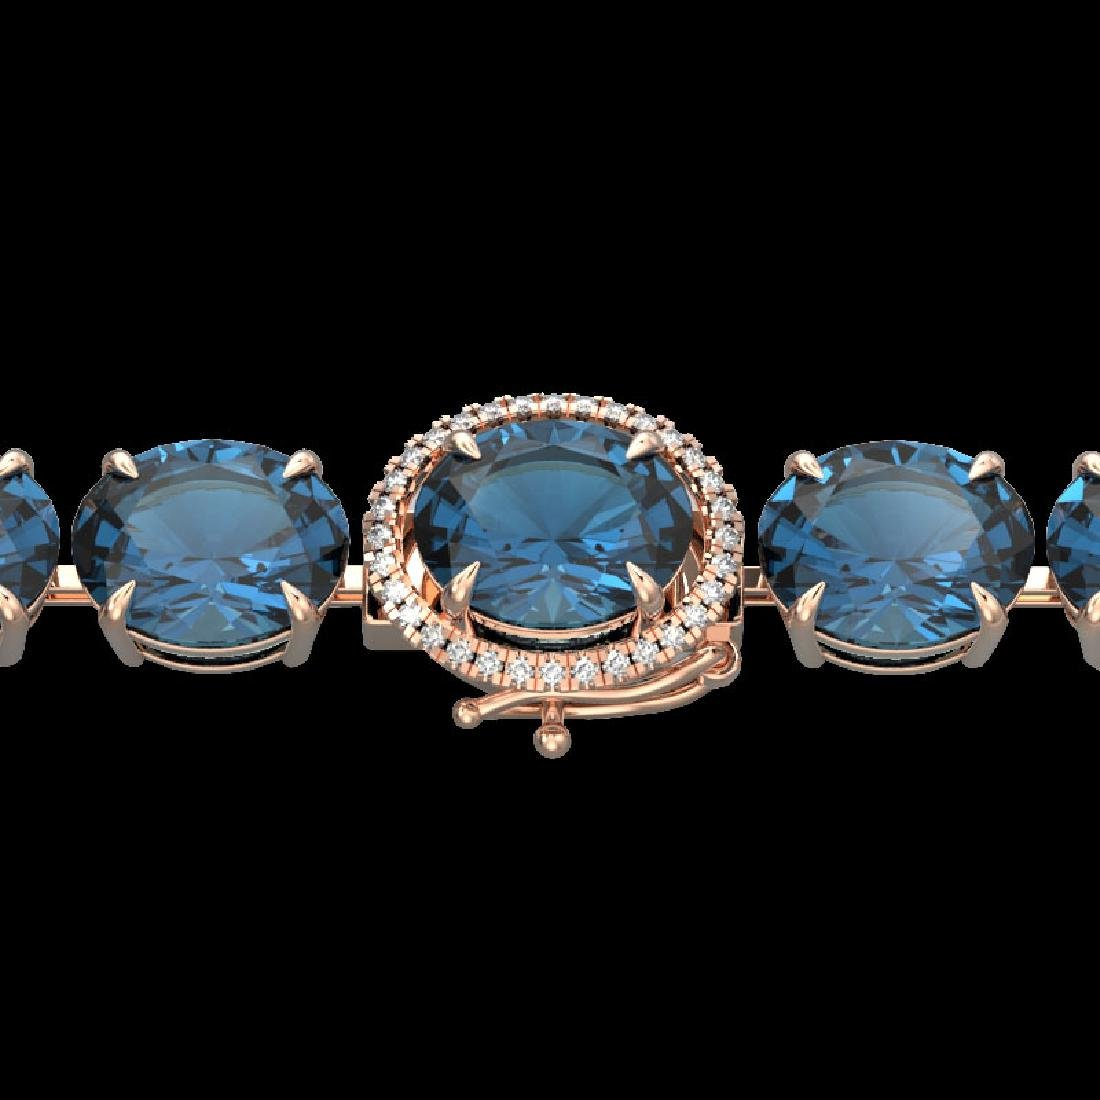 79 CTW London Blue Topaz & Micro VS/SI Diamond Halo